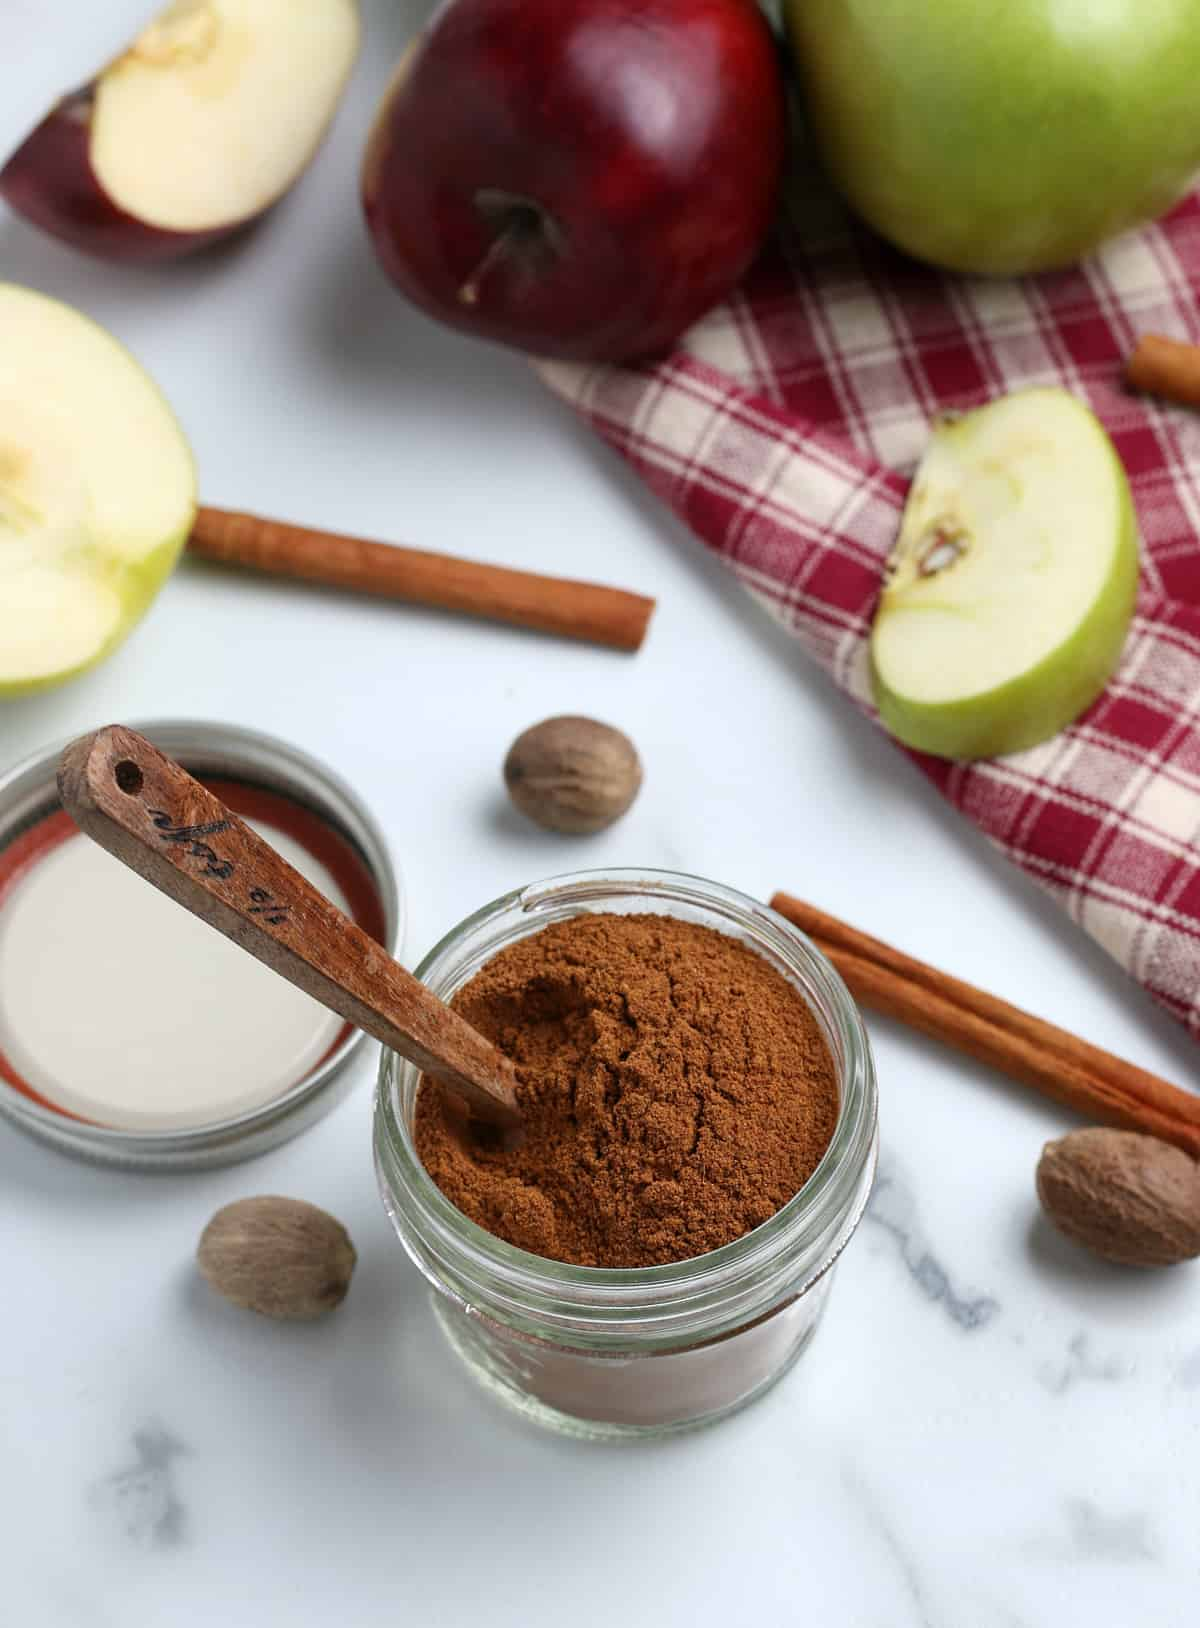 Apple Pie Spice in jar with spoon surrounded by apples and cinnamon